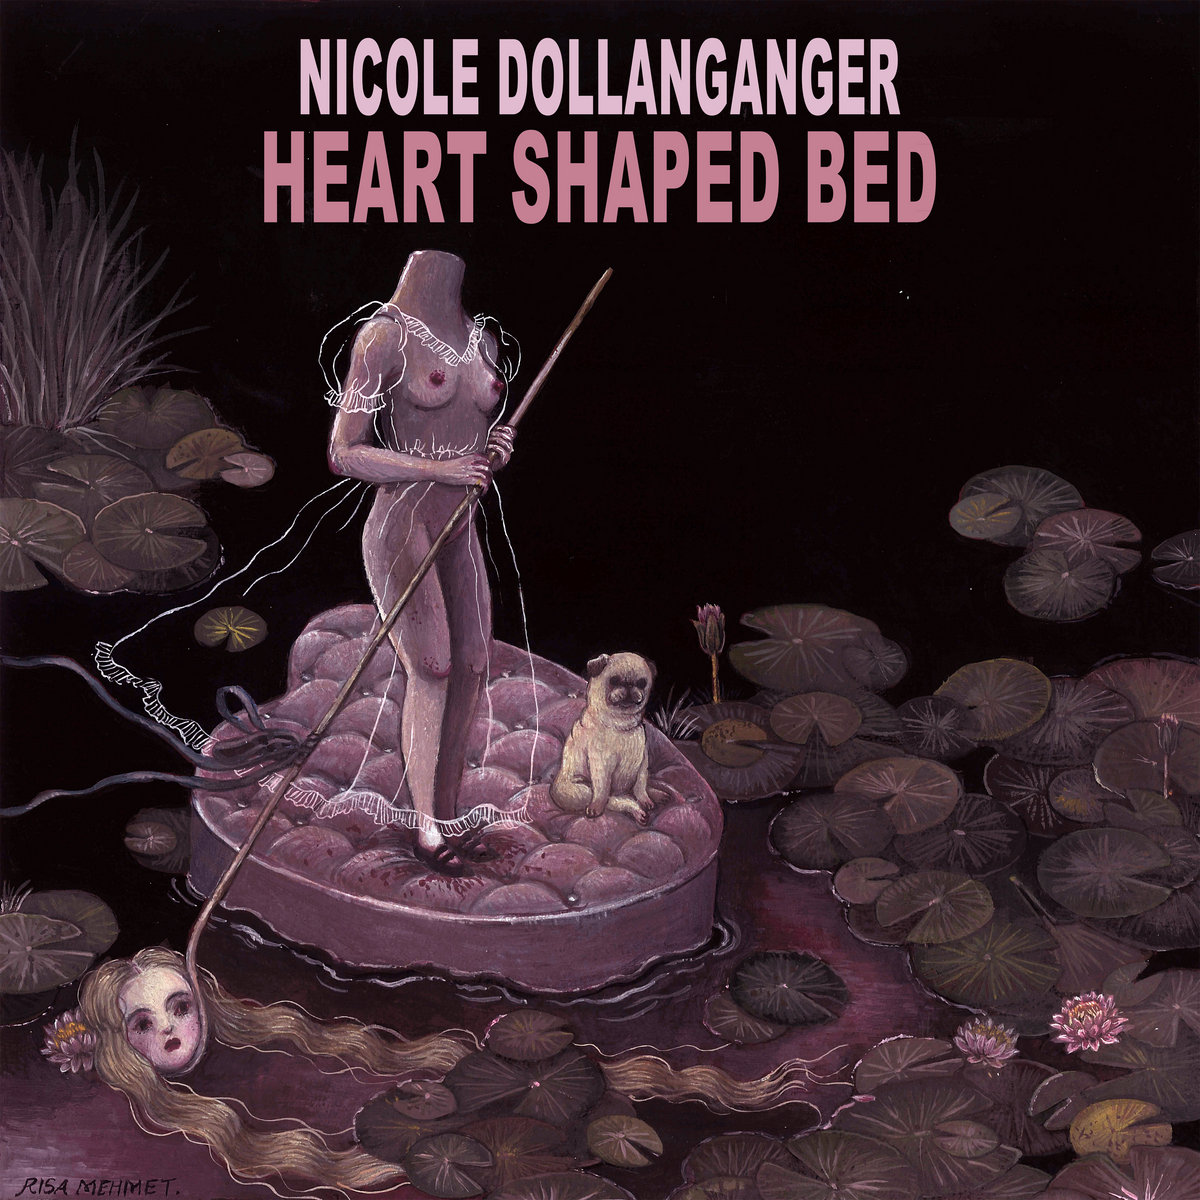 Heart Shaped Bed Side A Nicole Dollanganger